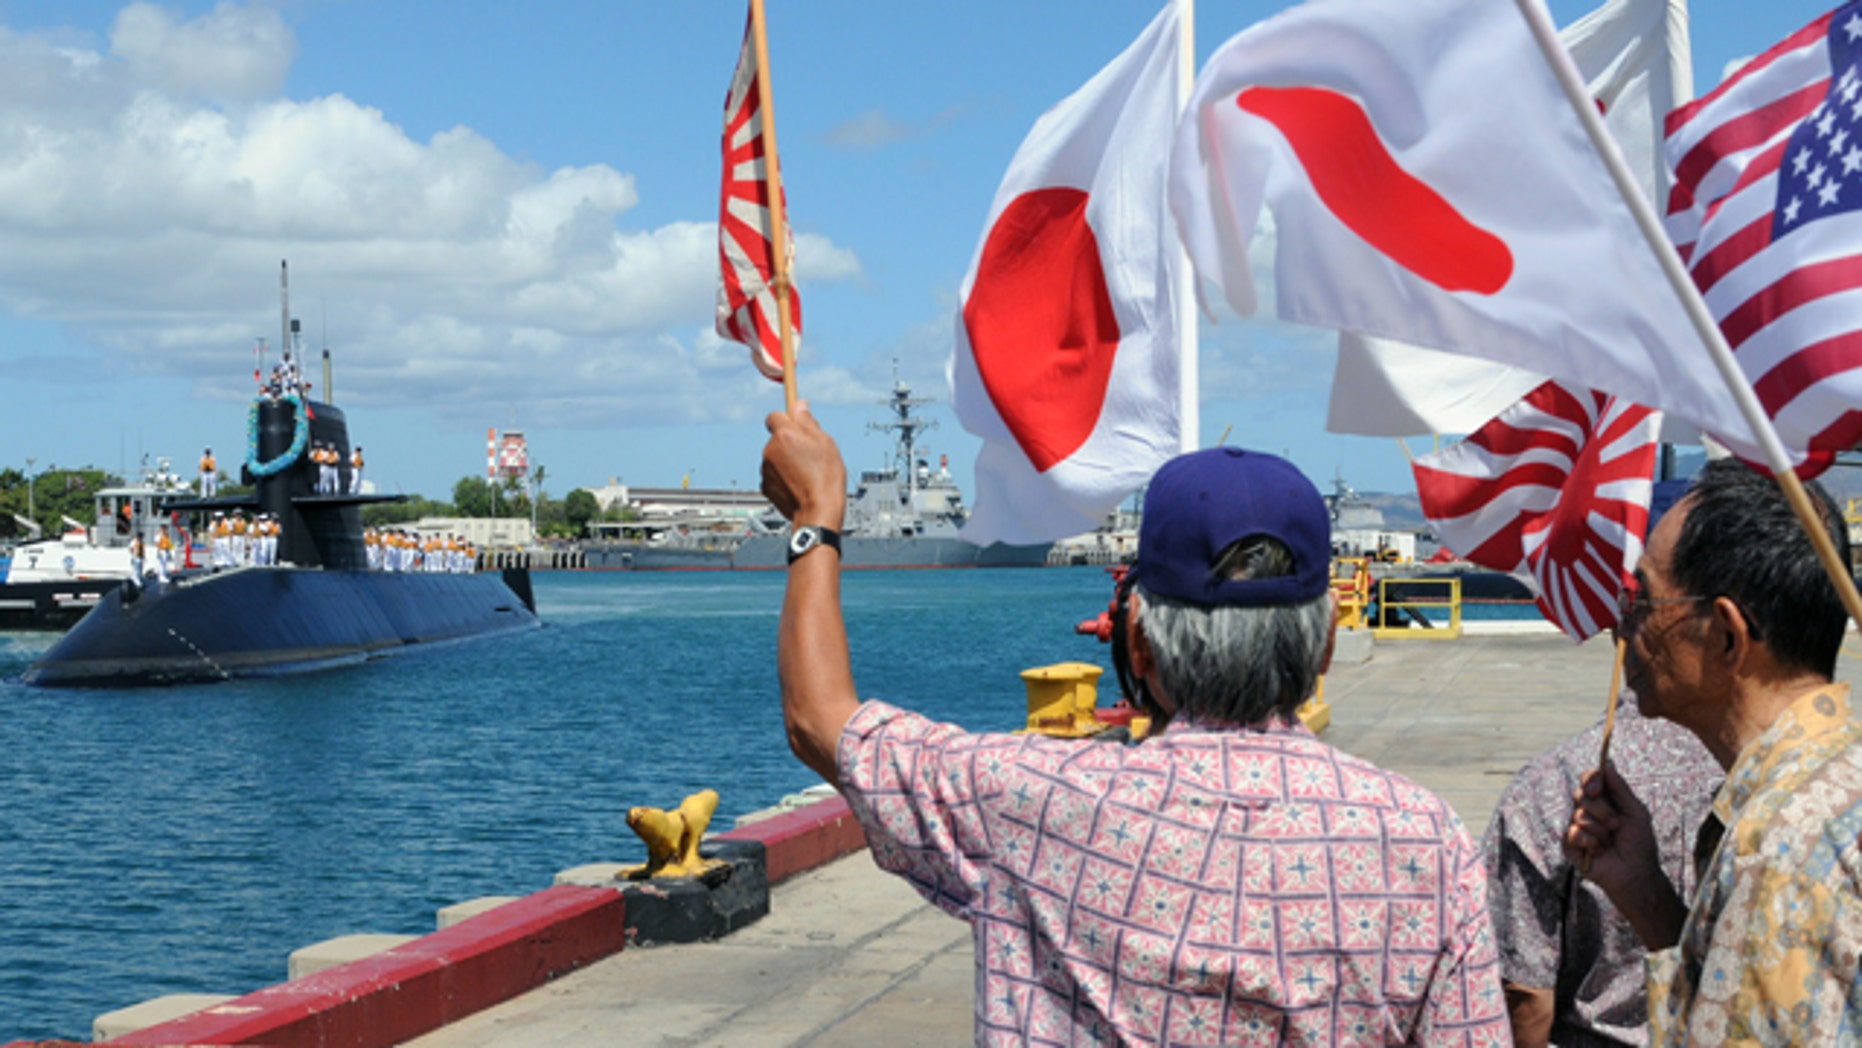 June 21, 2010: Onlookers wave as the Japanese Oyashio-class submarine J.S. Mochishio arrives at Joint Base Pearl Harbor-Hickam for Rim of the Pacific exercises. RIMPAC is a biennial, multi-national exercise designed to strengthen regional partnerships and improve multi-national interoperability.